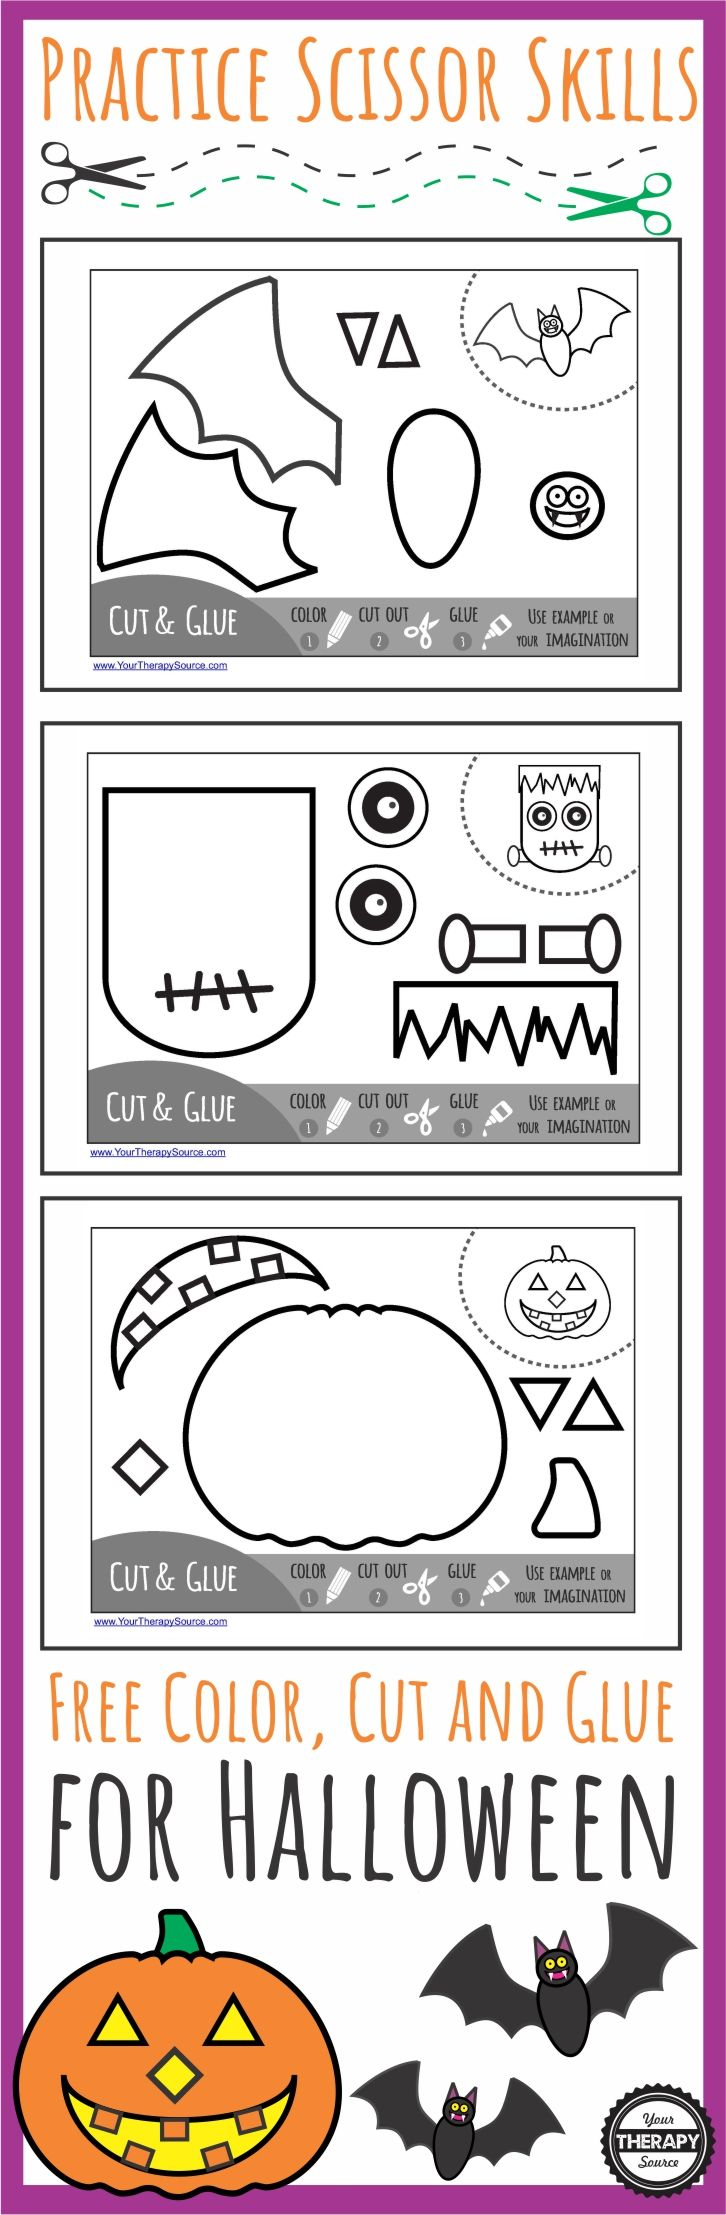 Color Cut Glue Halloween - practice coloring, scissor skills, pasting and sequencing with this free download from Your Therapy Source.